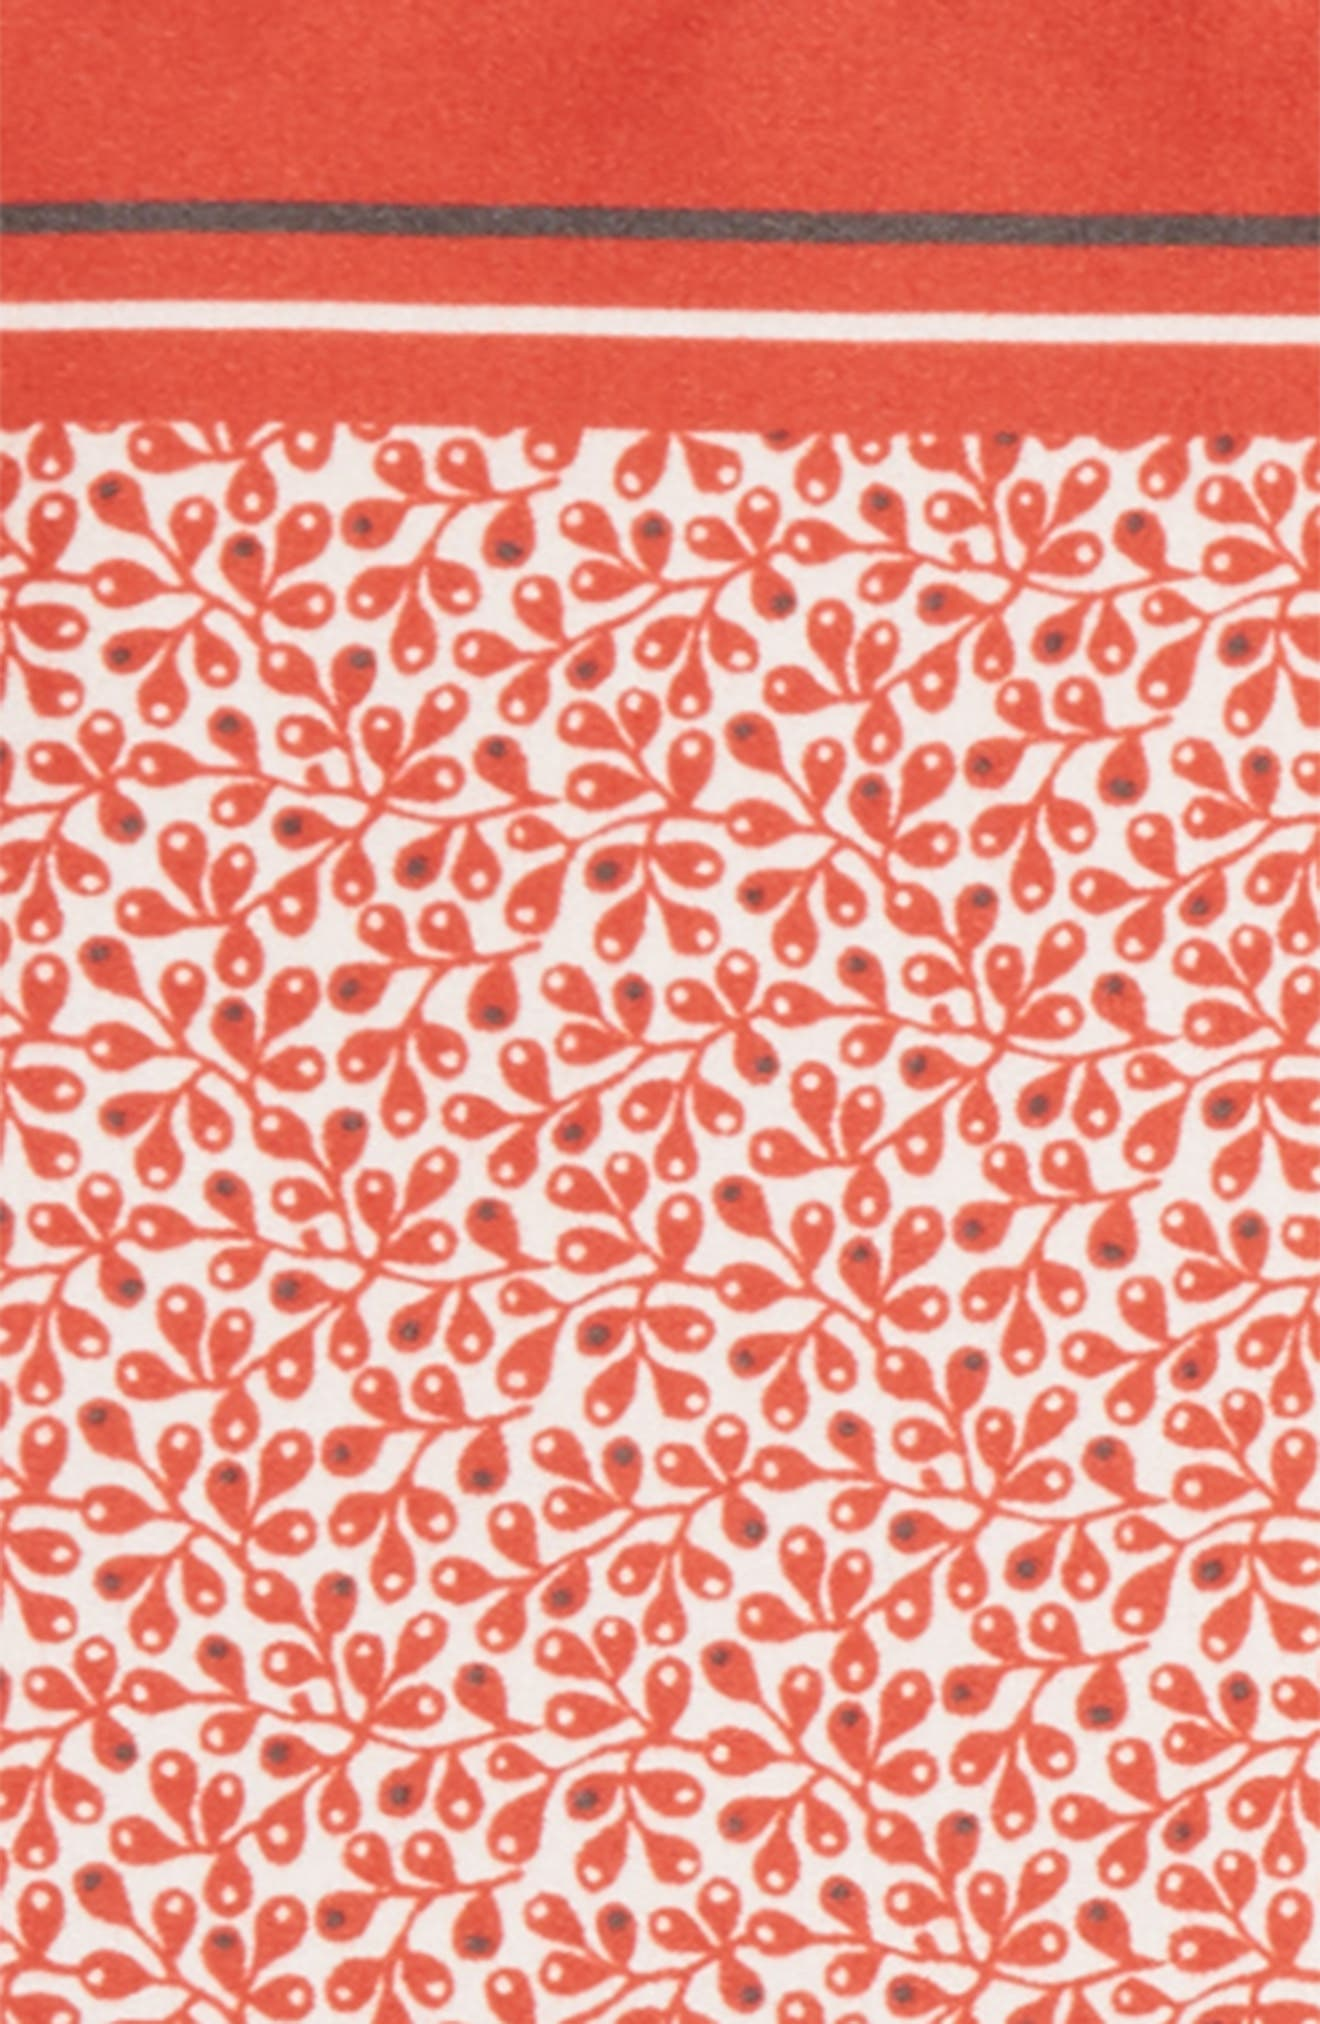 Floral Silk Pocket Square,                             Alternate thumbnail 3, color,                             Red